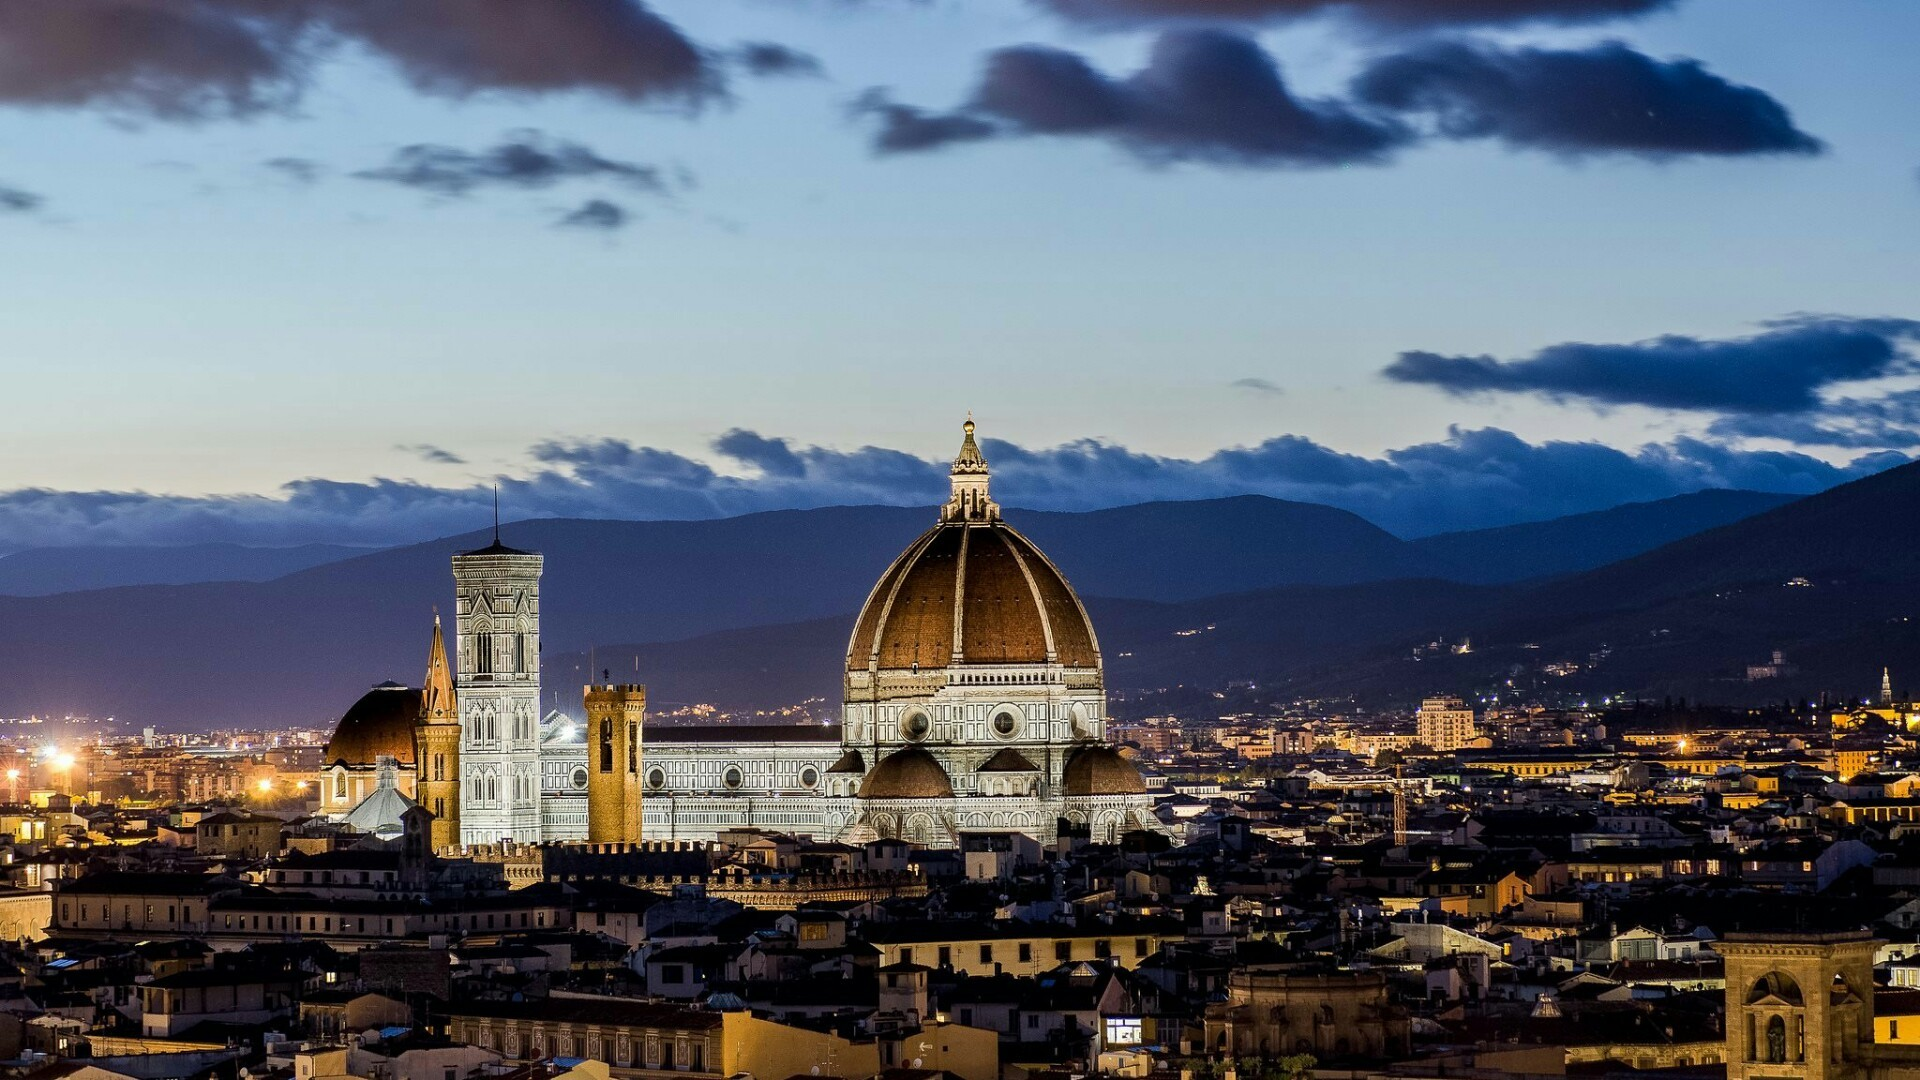 1920x1080 Florence Cathedral Wallpaper 6 - 1920 X 1080